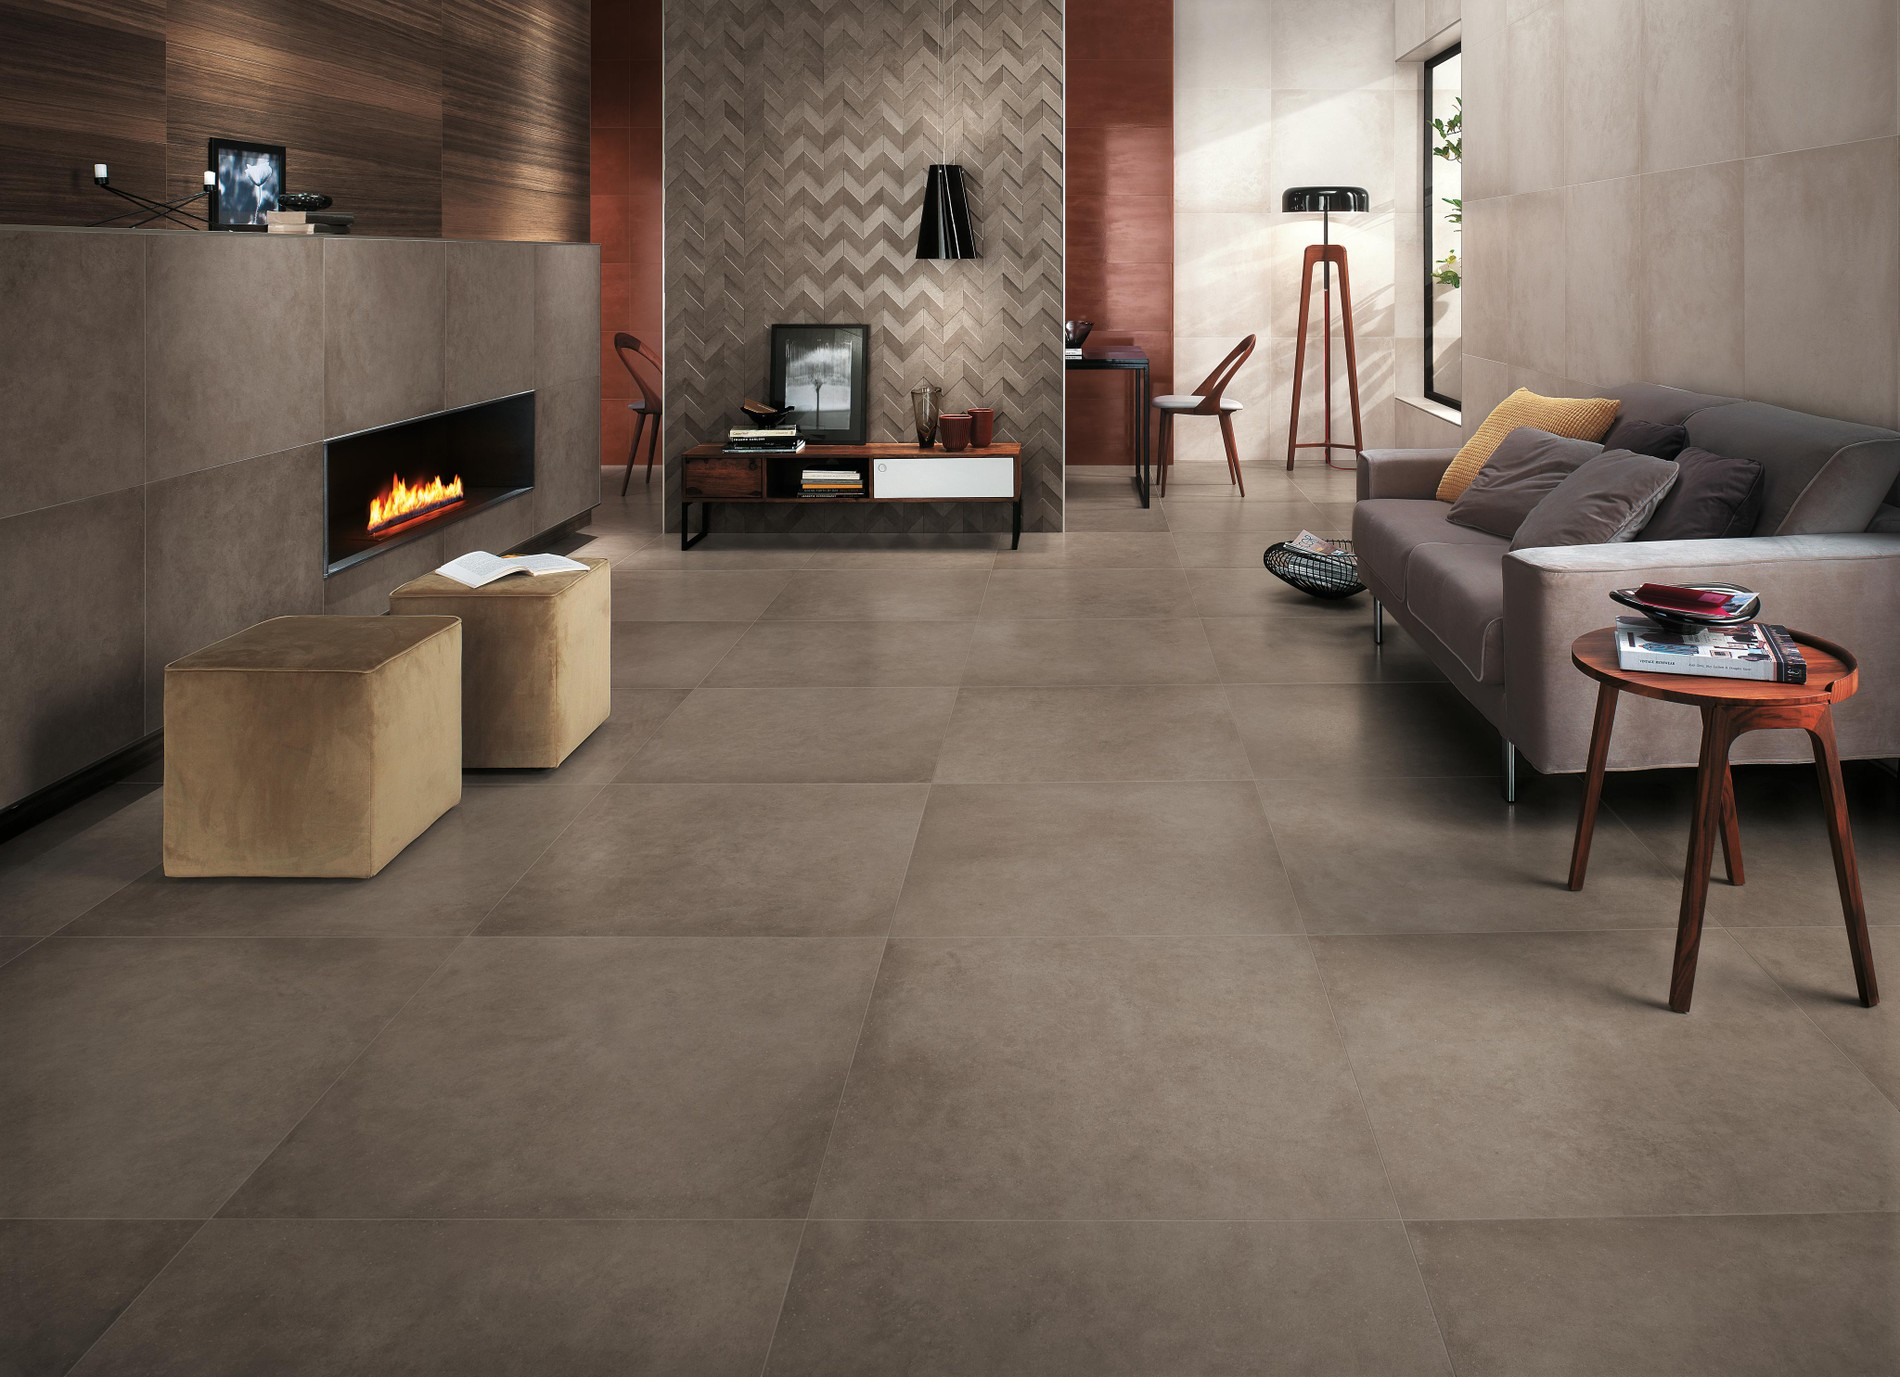 Resin- and concrete-look floor and wall tiles